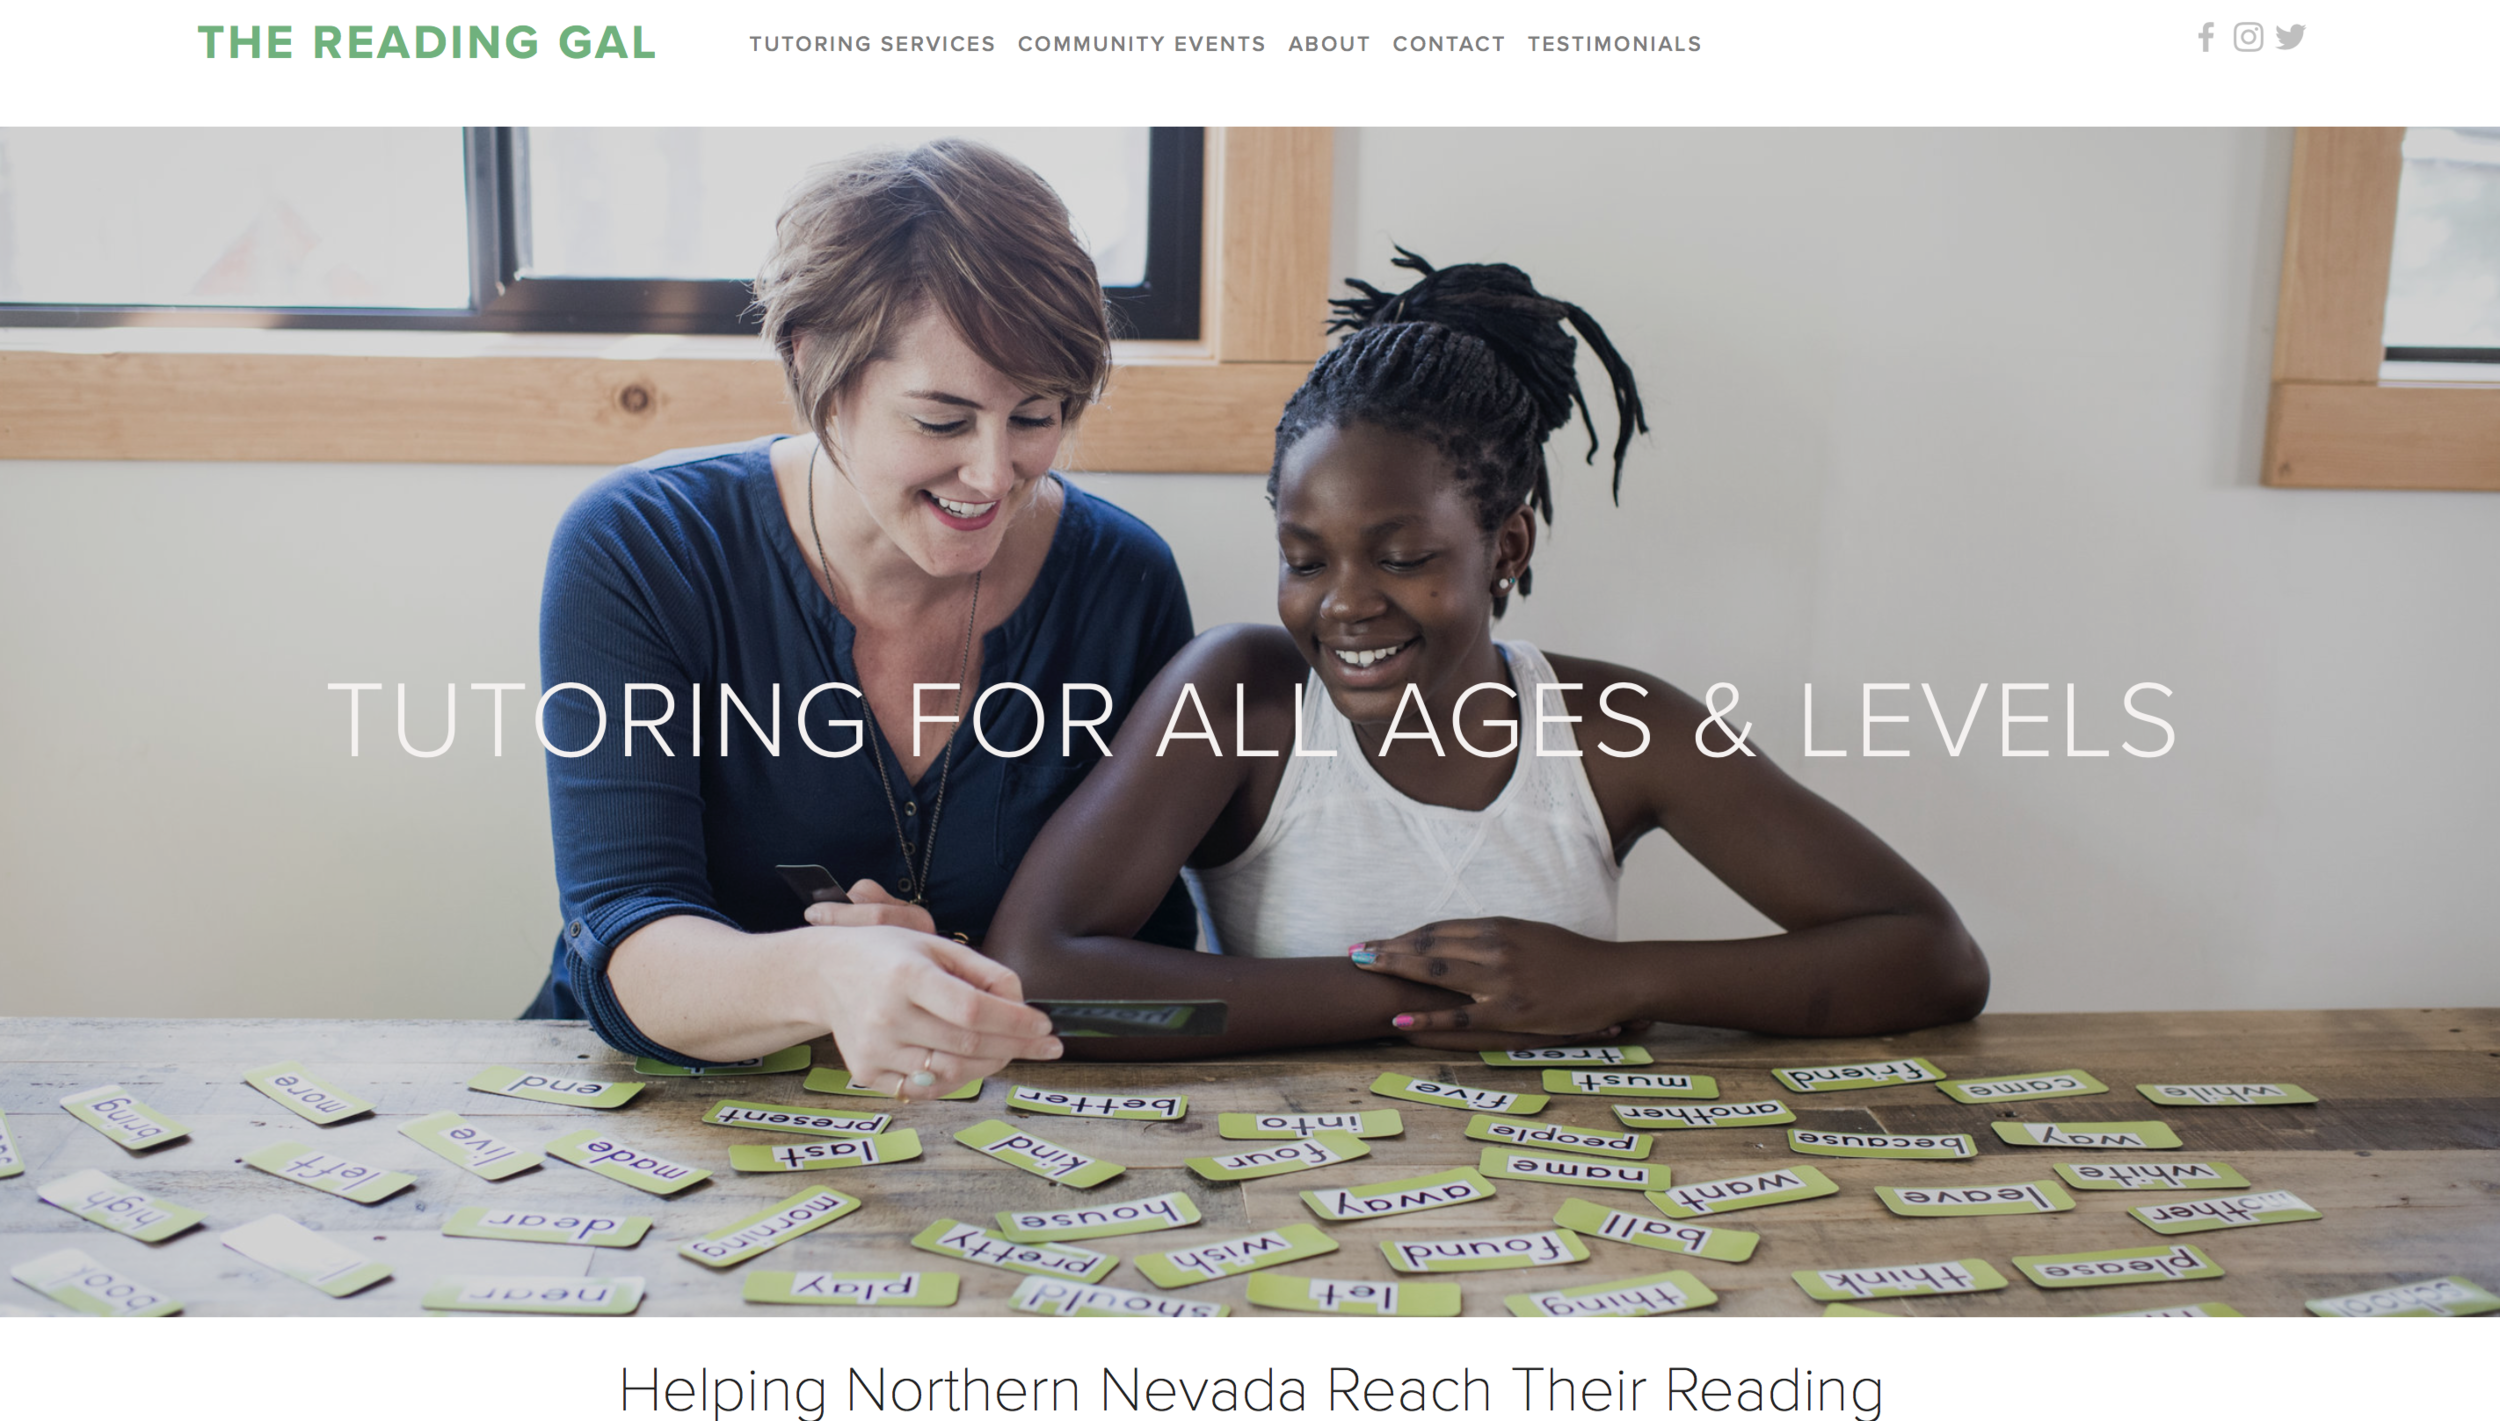 The Reading Gal — Tutor